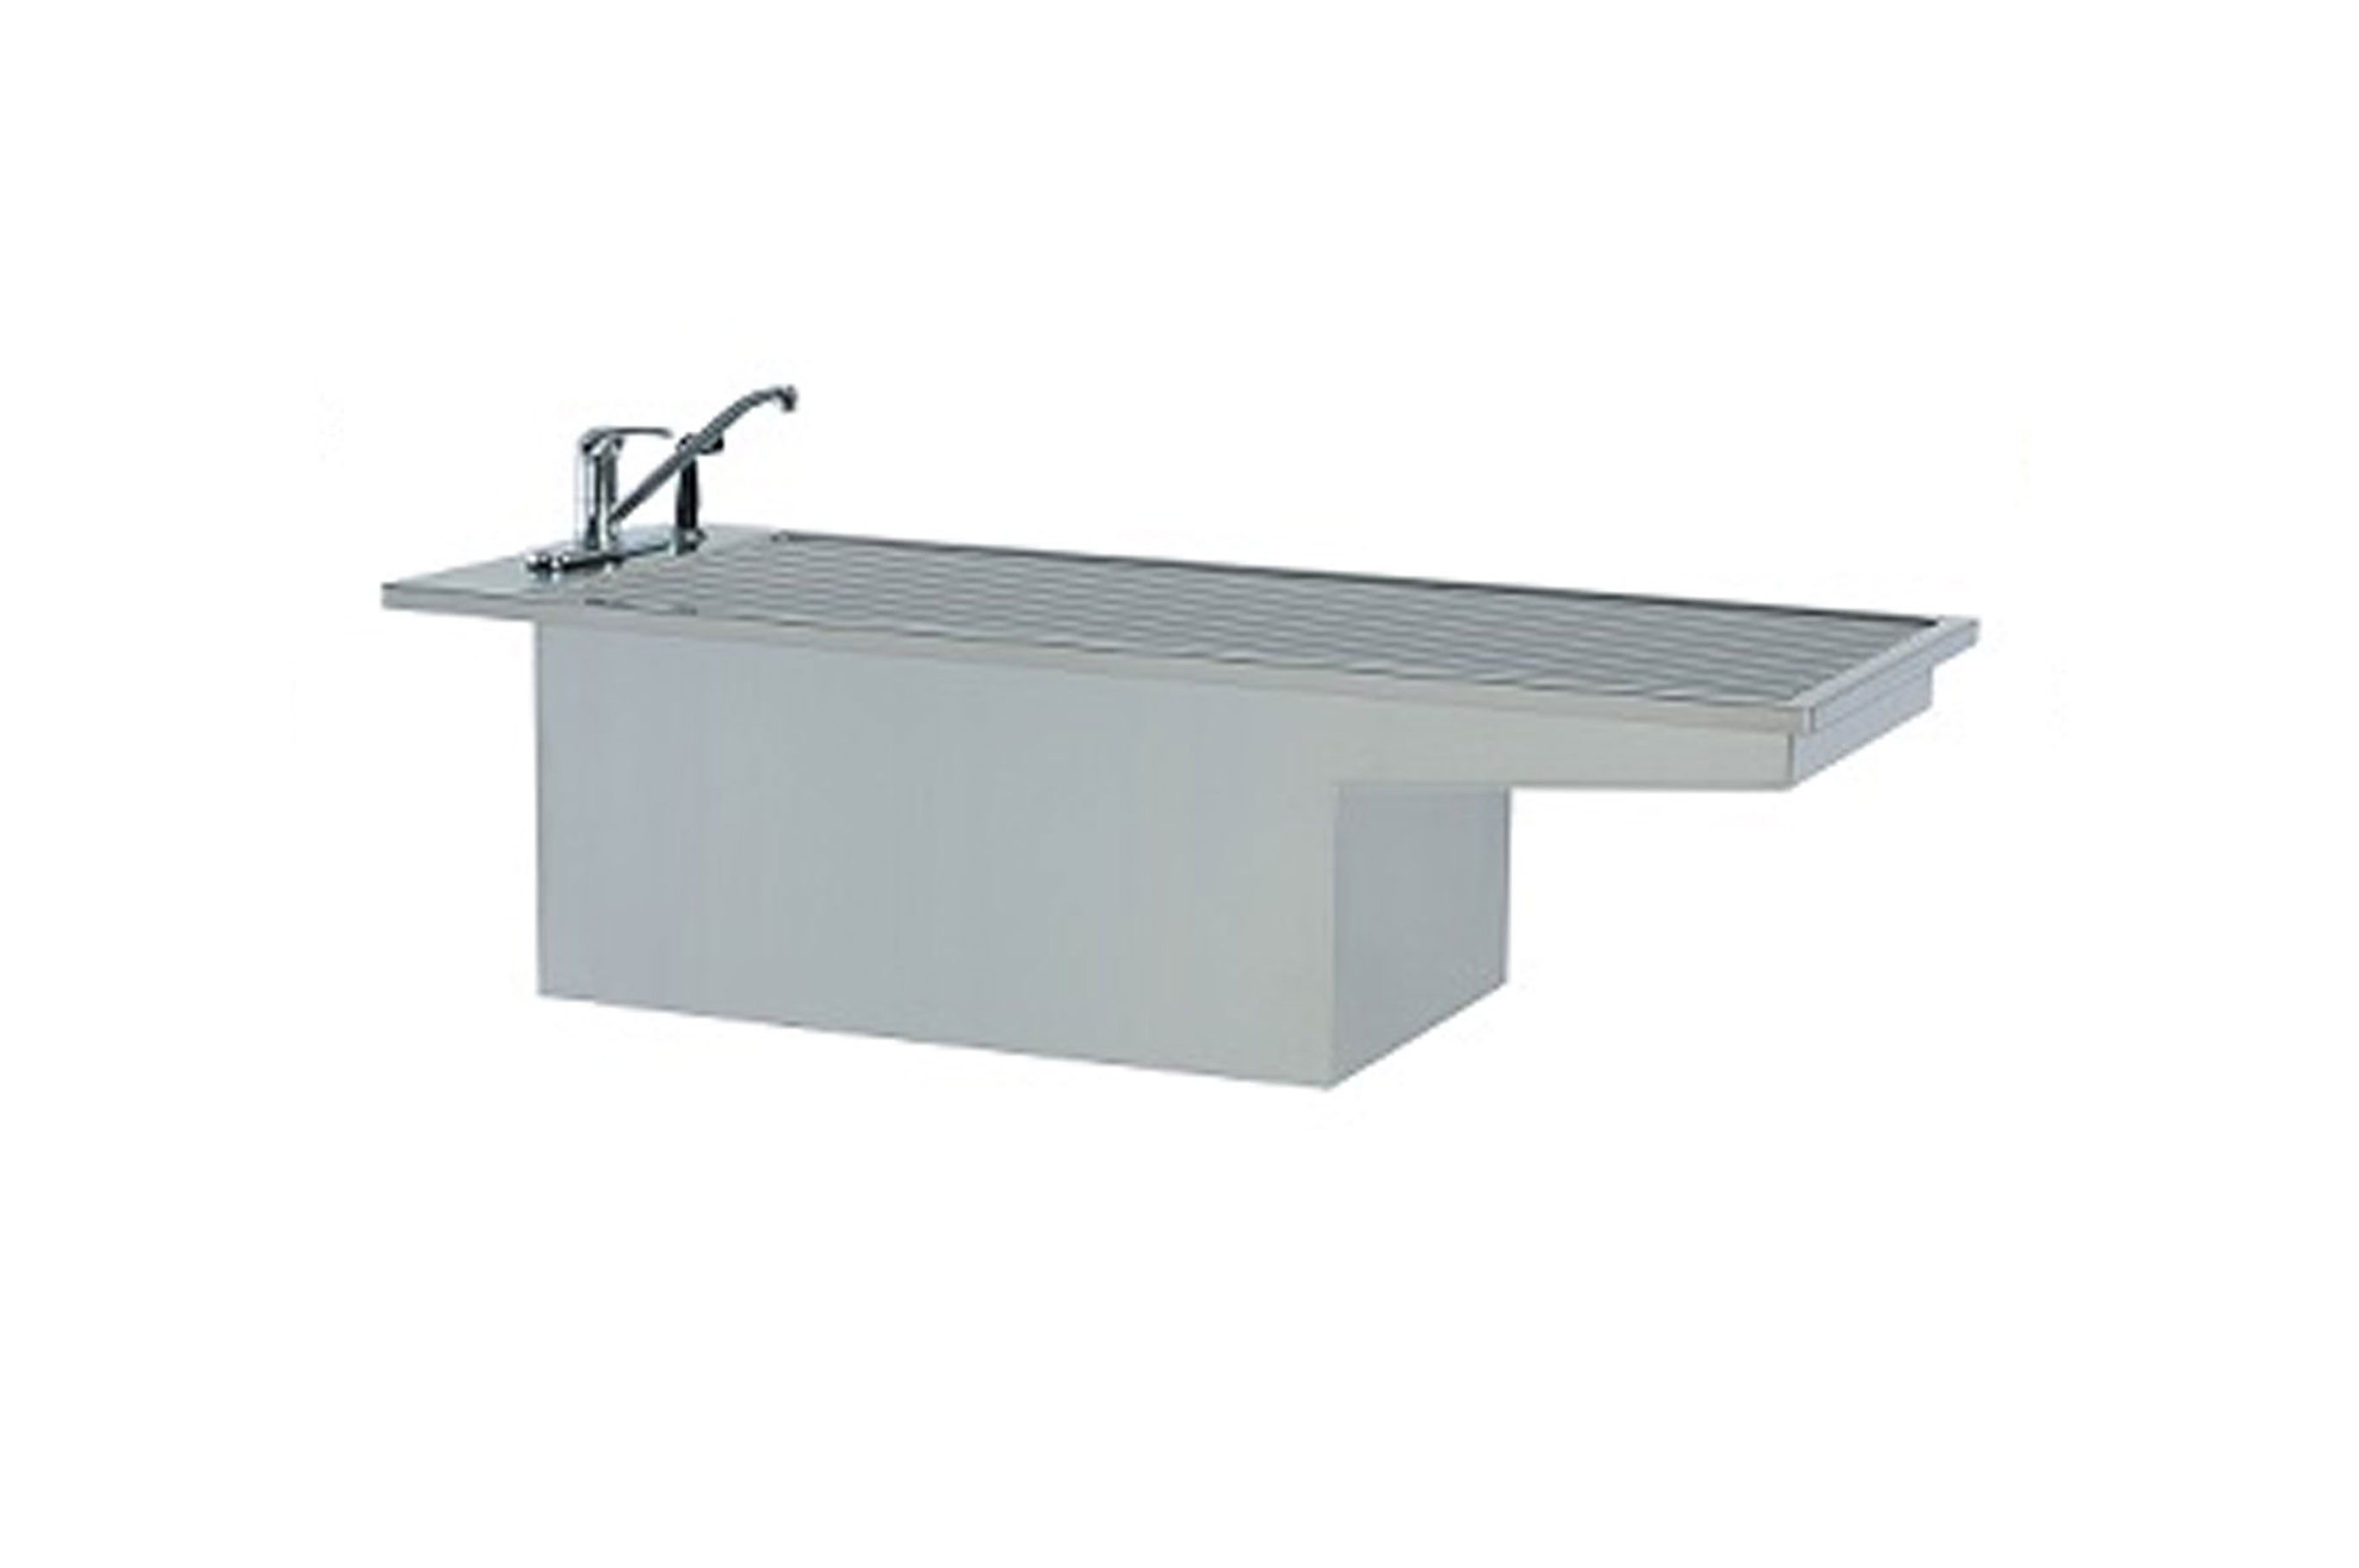 517-split-level-drop-in-tub-with-racks